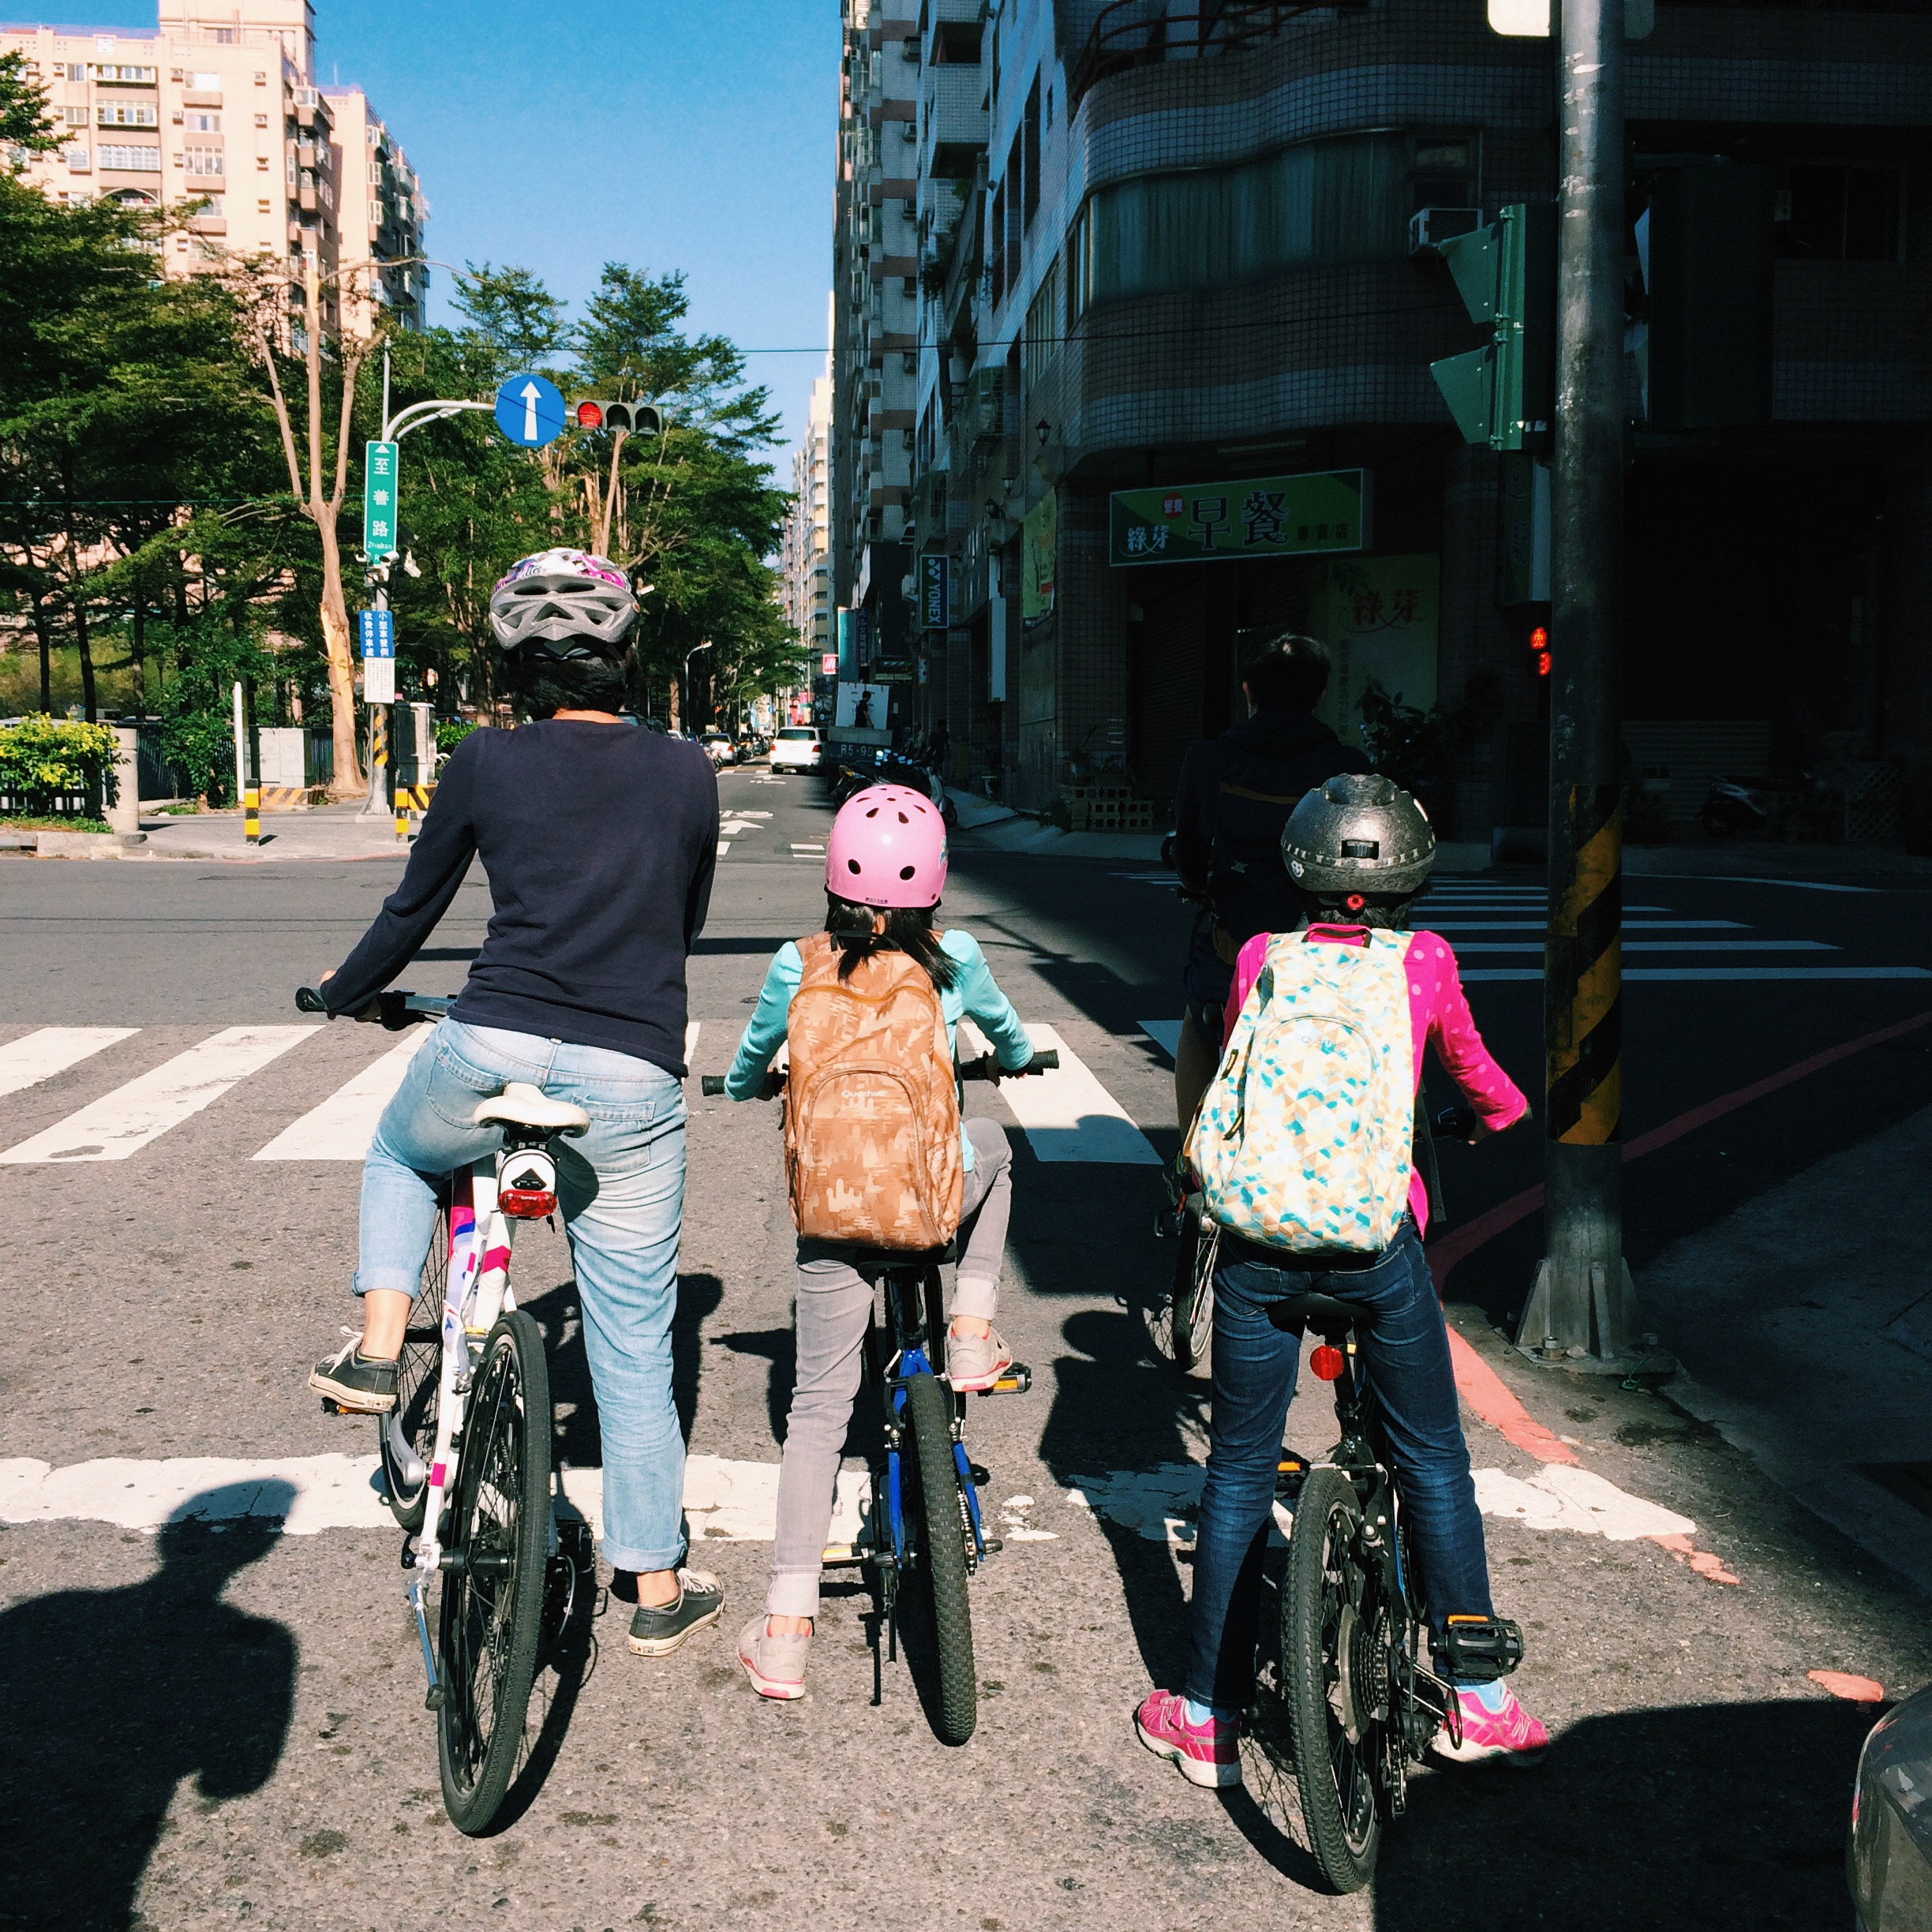 A mum riding bikes with her two daughters